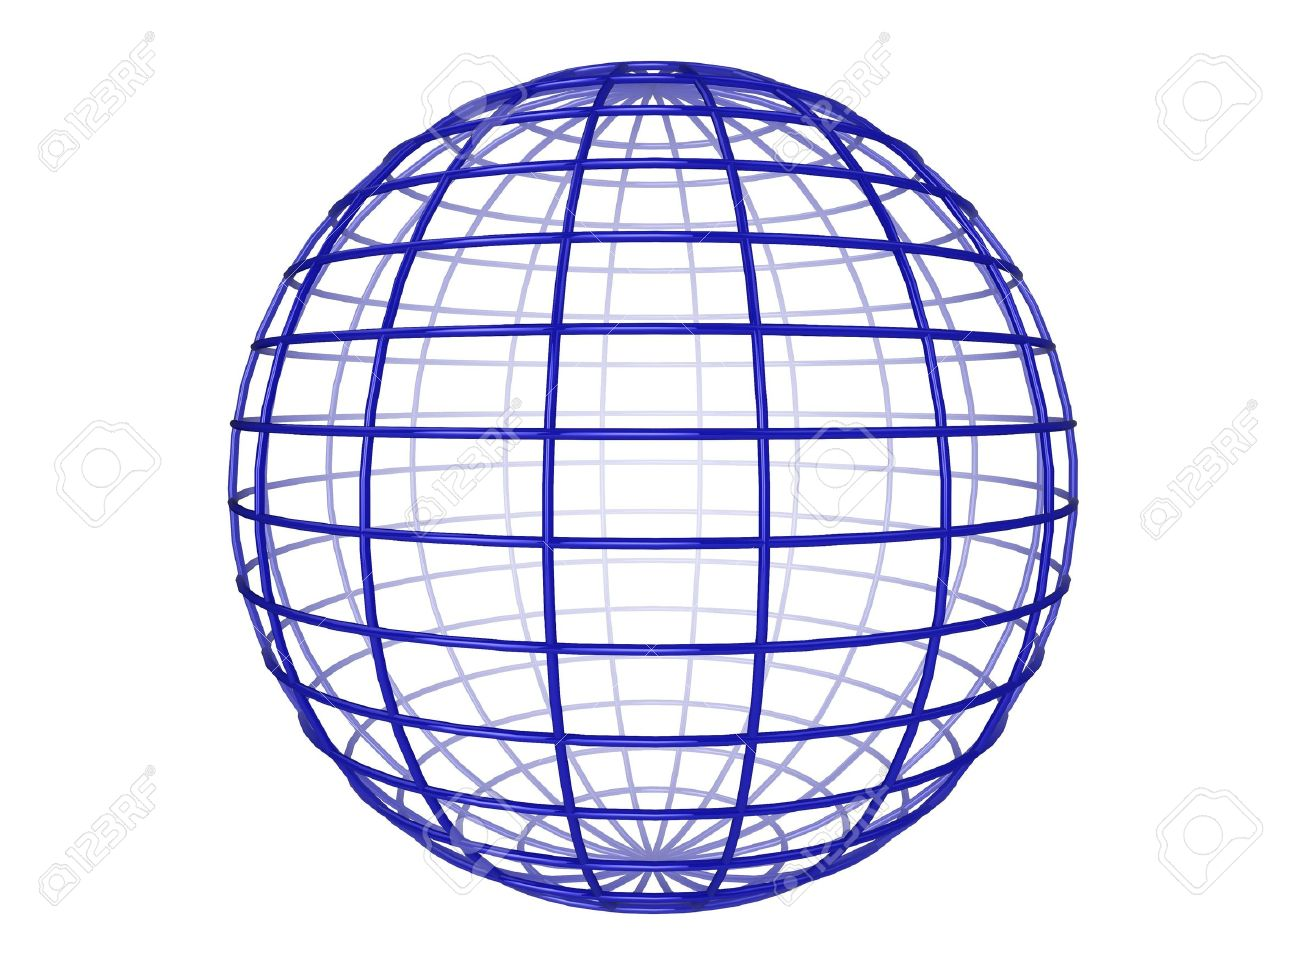 Illustration of a blue 3d wireframe sphere, on a white background Stock Photo - 5864779